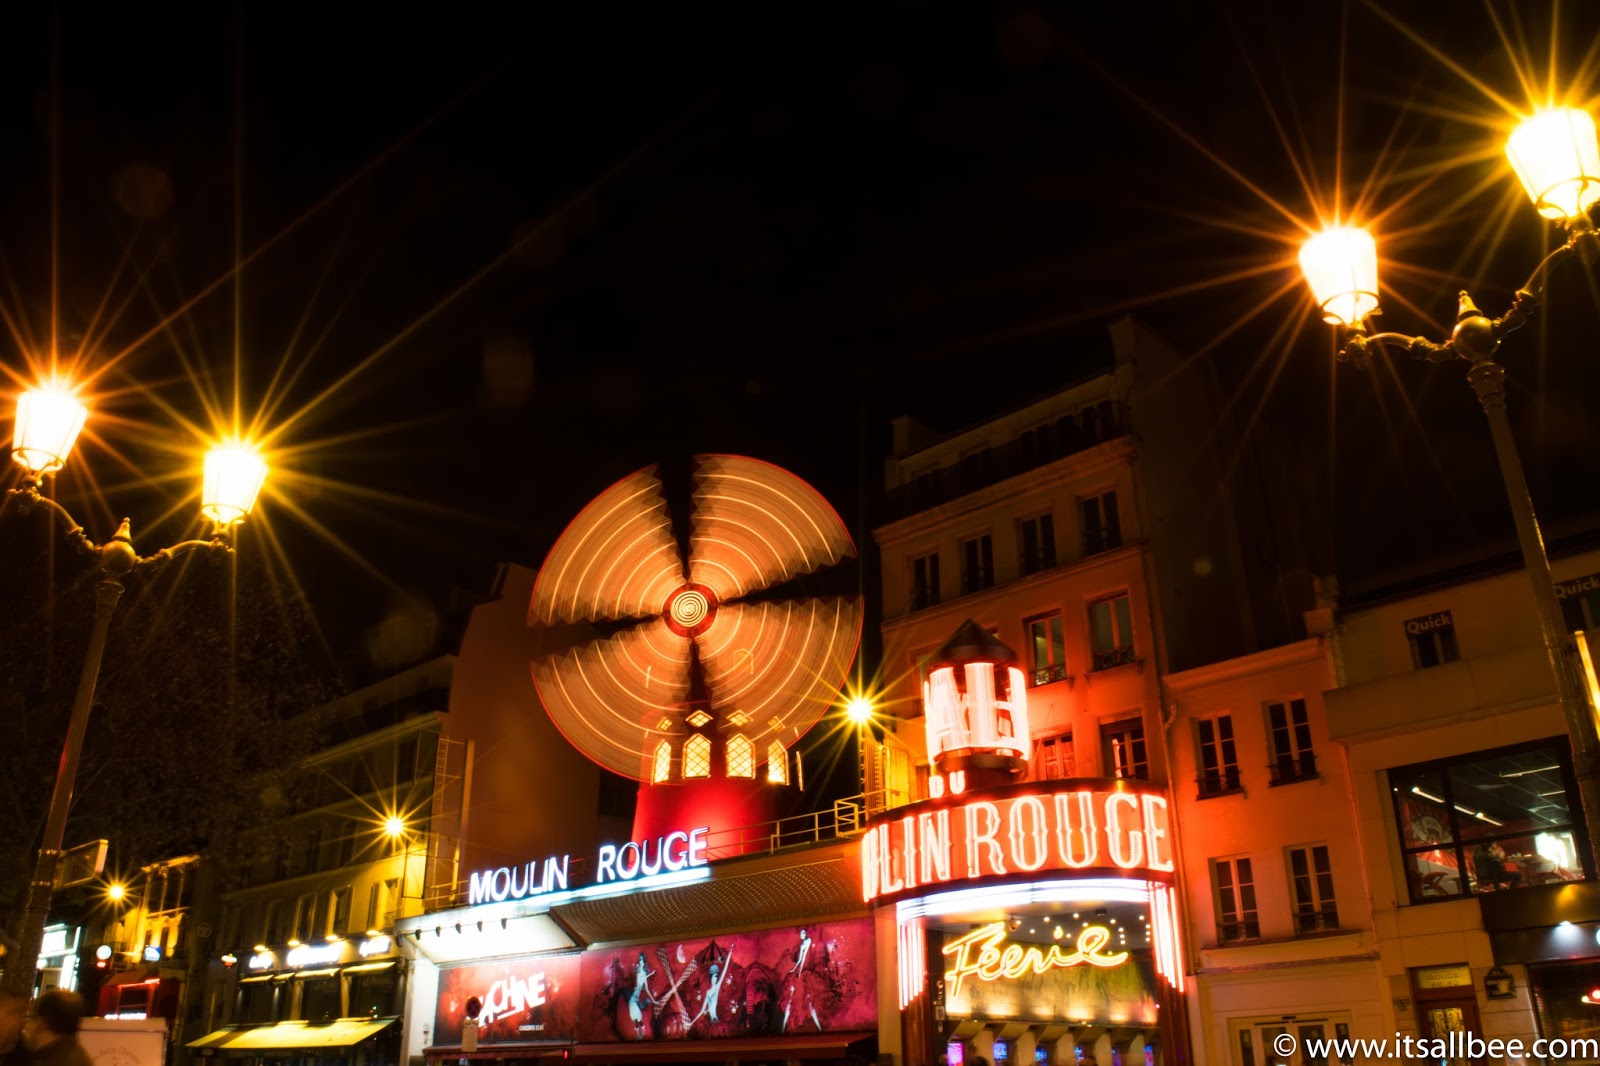 Moulin Rouge Paris - Photo by Bianca - www.itsallbee.com